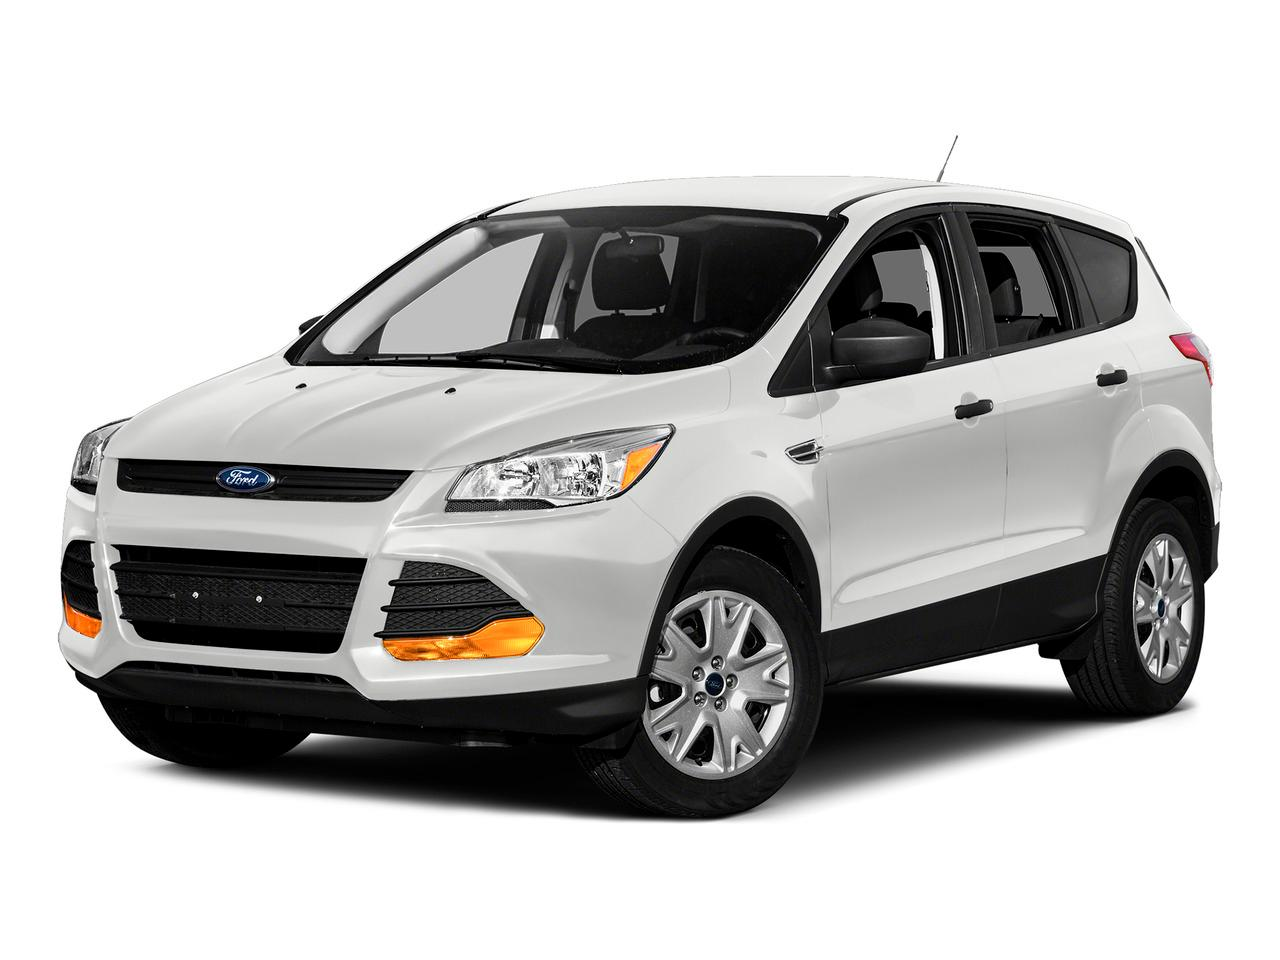 Used 2015 Ford Escape Titanium with VIN 1FMCU9J93FUC06932 for sale in Chaska, Minnesota